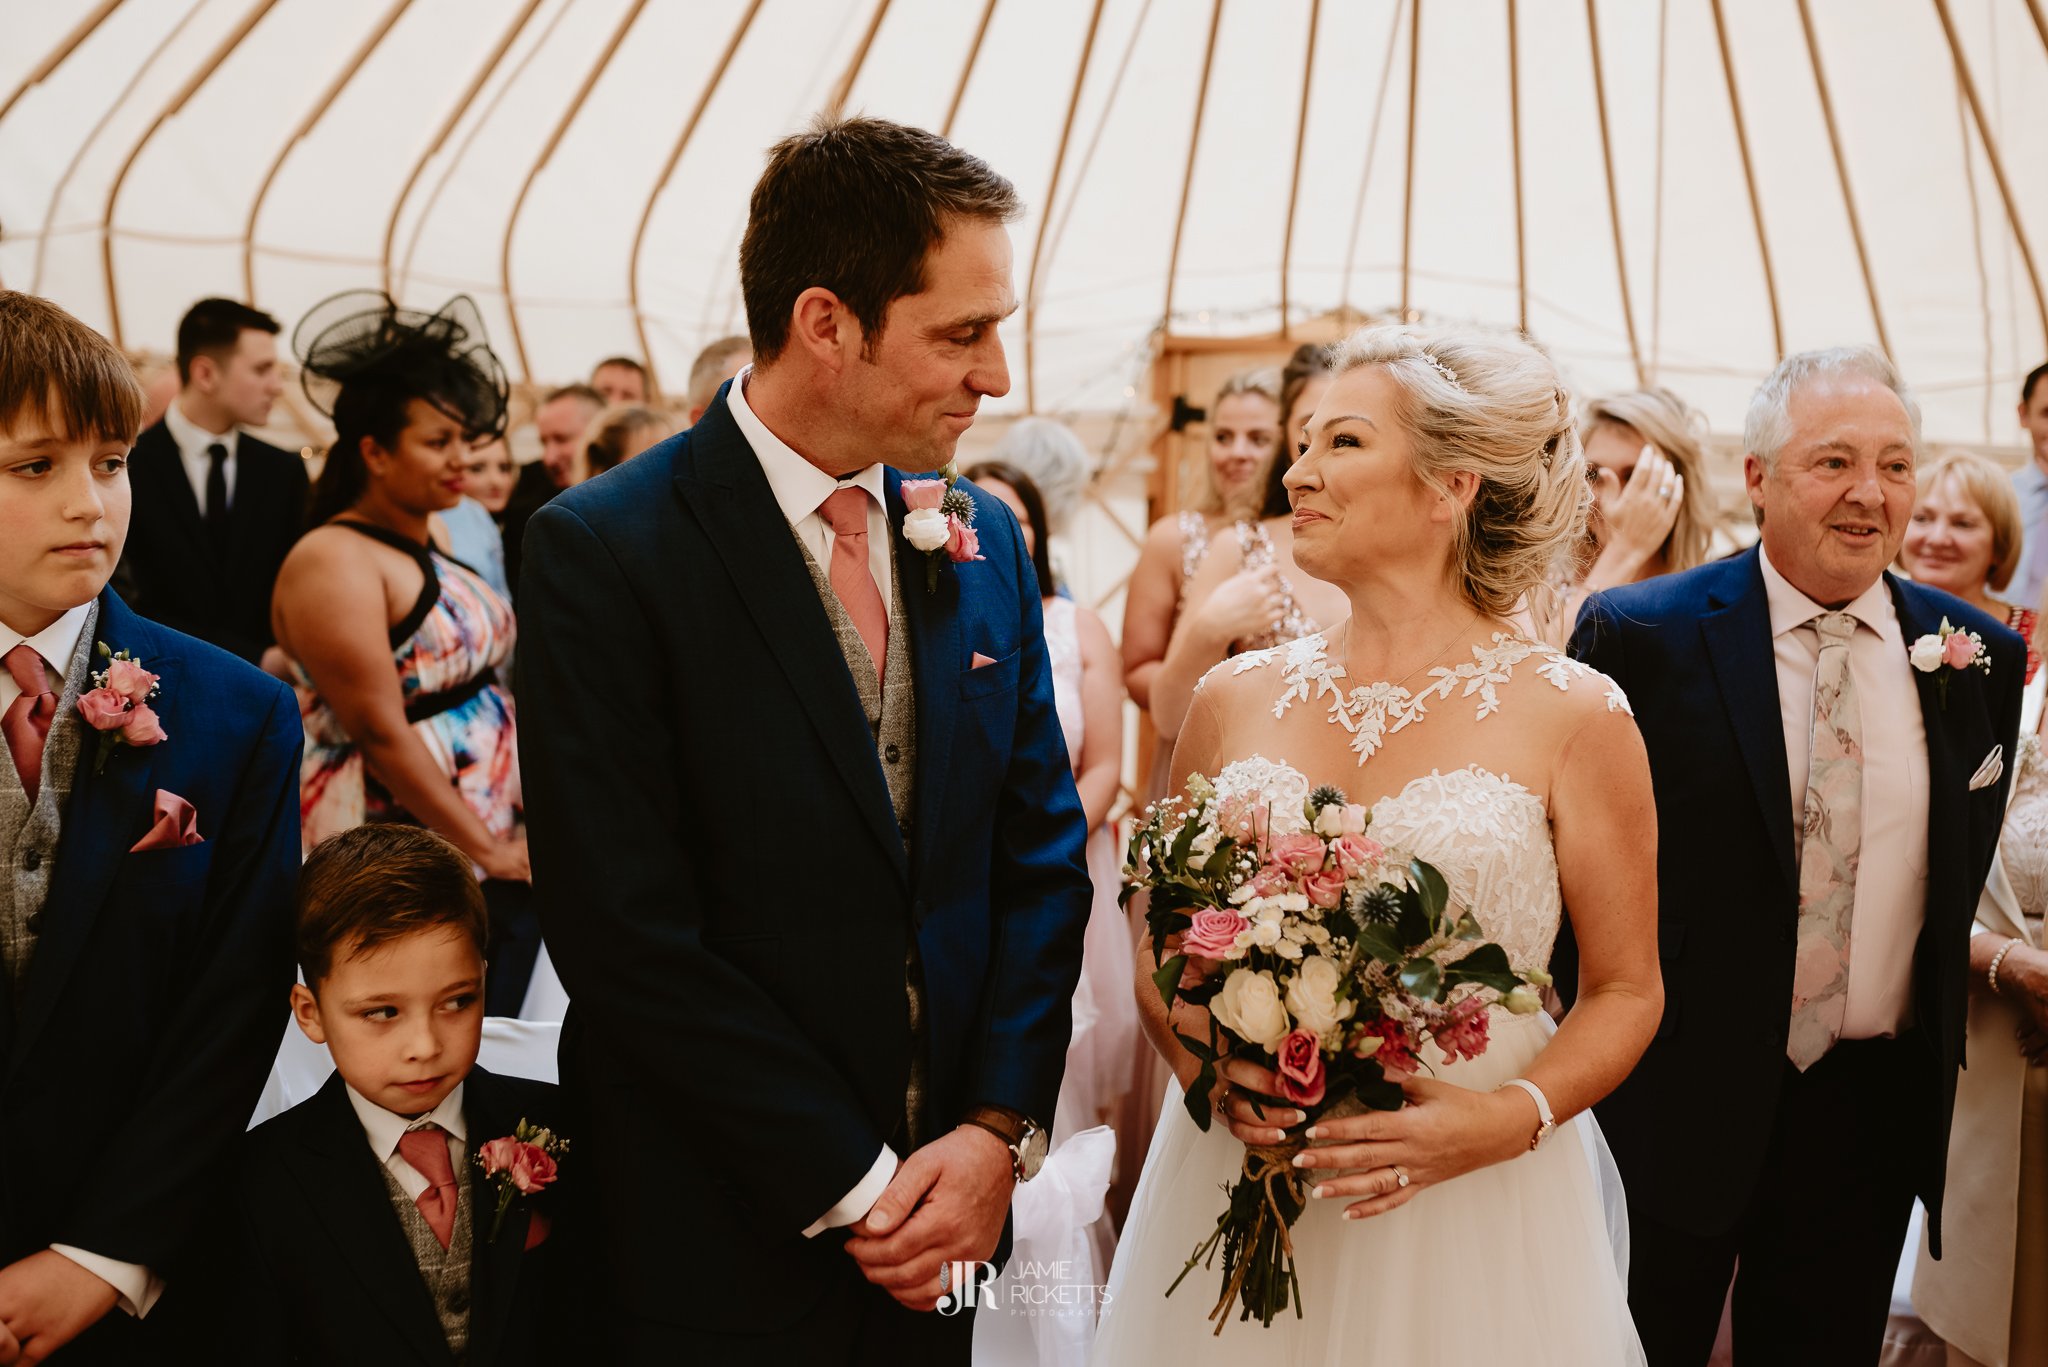 Wroxeter-Hotel-Wedding-Photography-In-Shropshire-By-Shropshire-Wedding-Photographer-Jamie-Ricketts-055.JPG